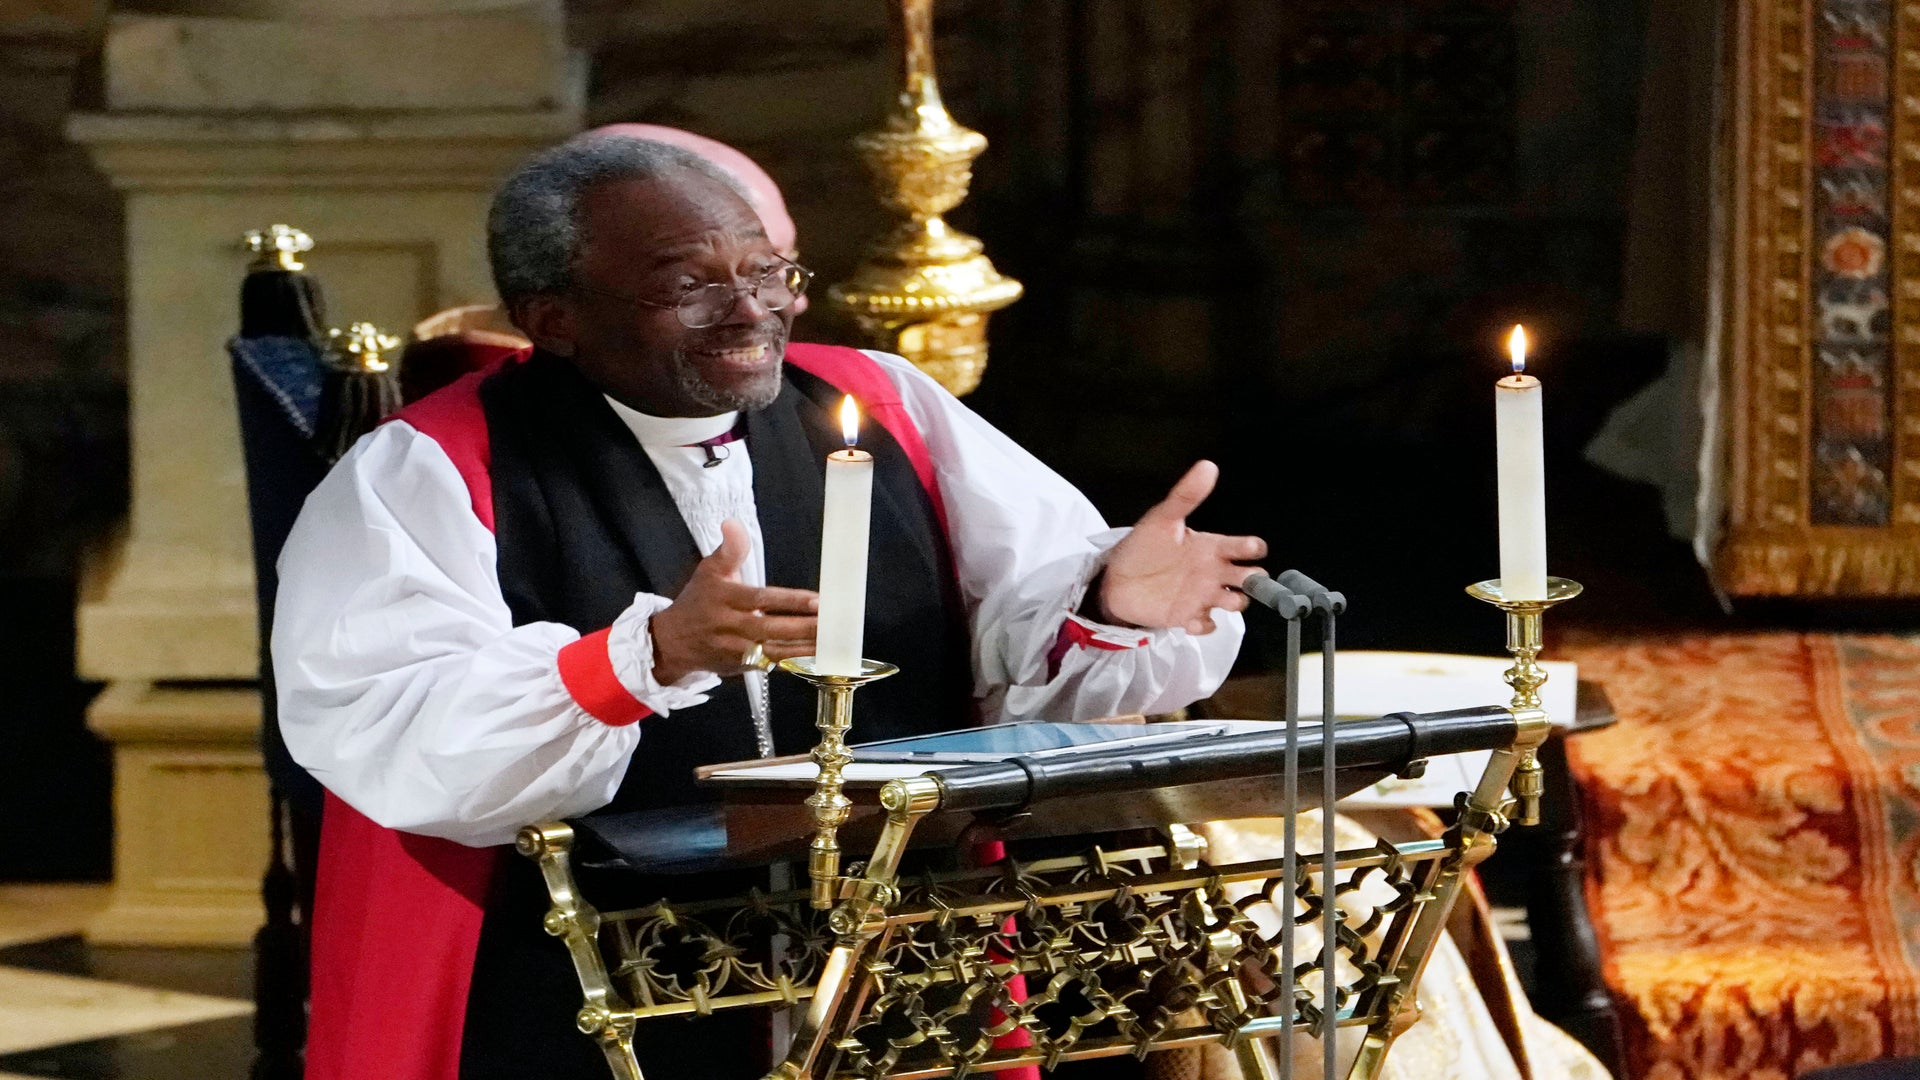 Bishop Michael Curry Says He Prays For President Trump